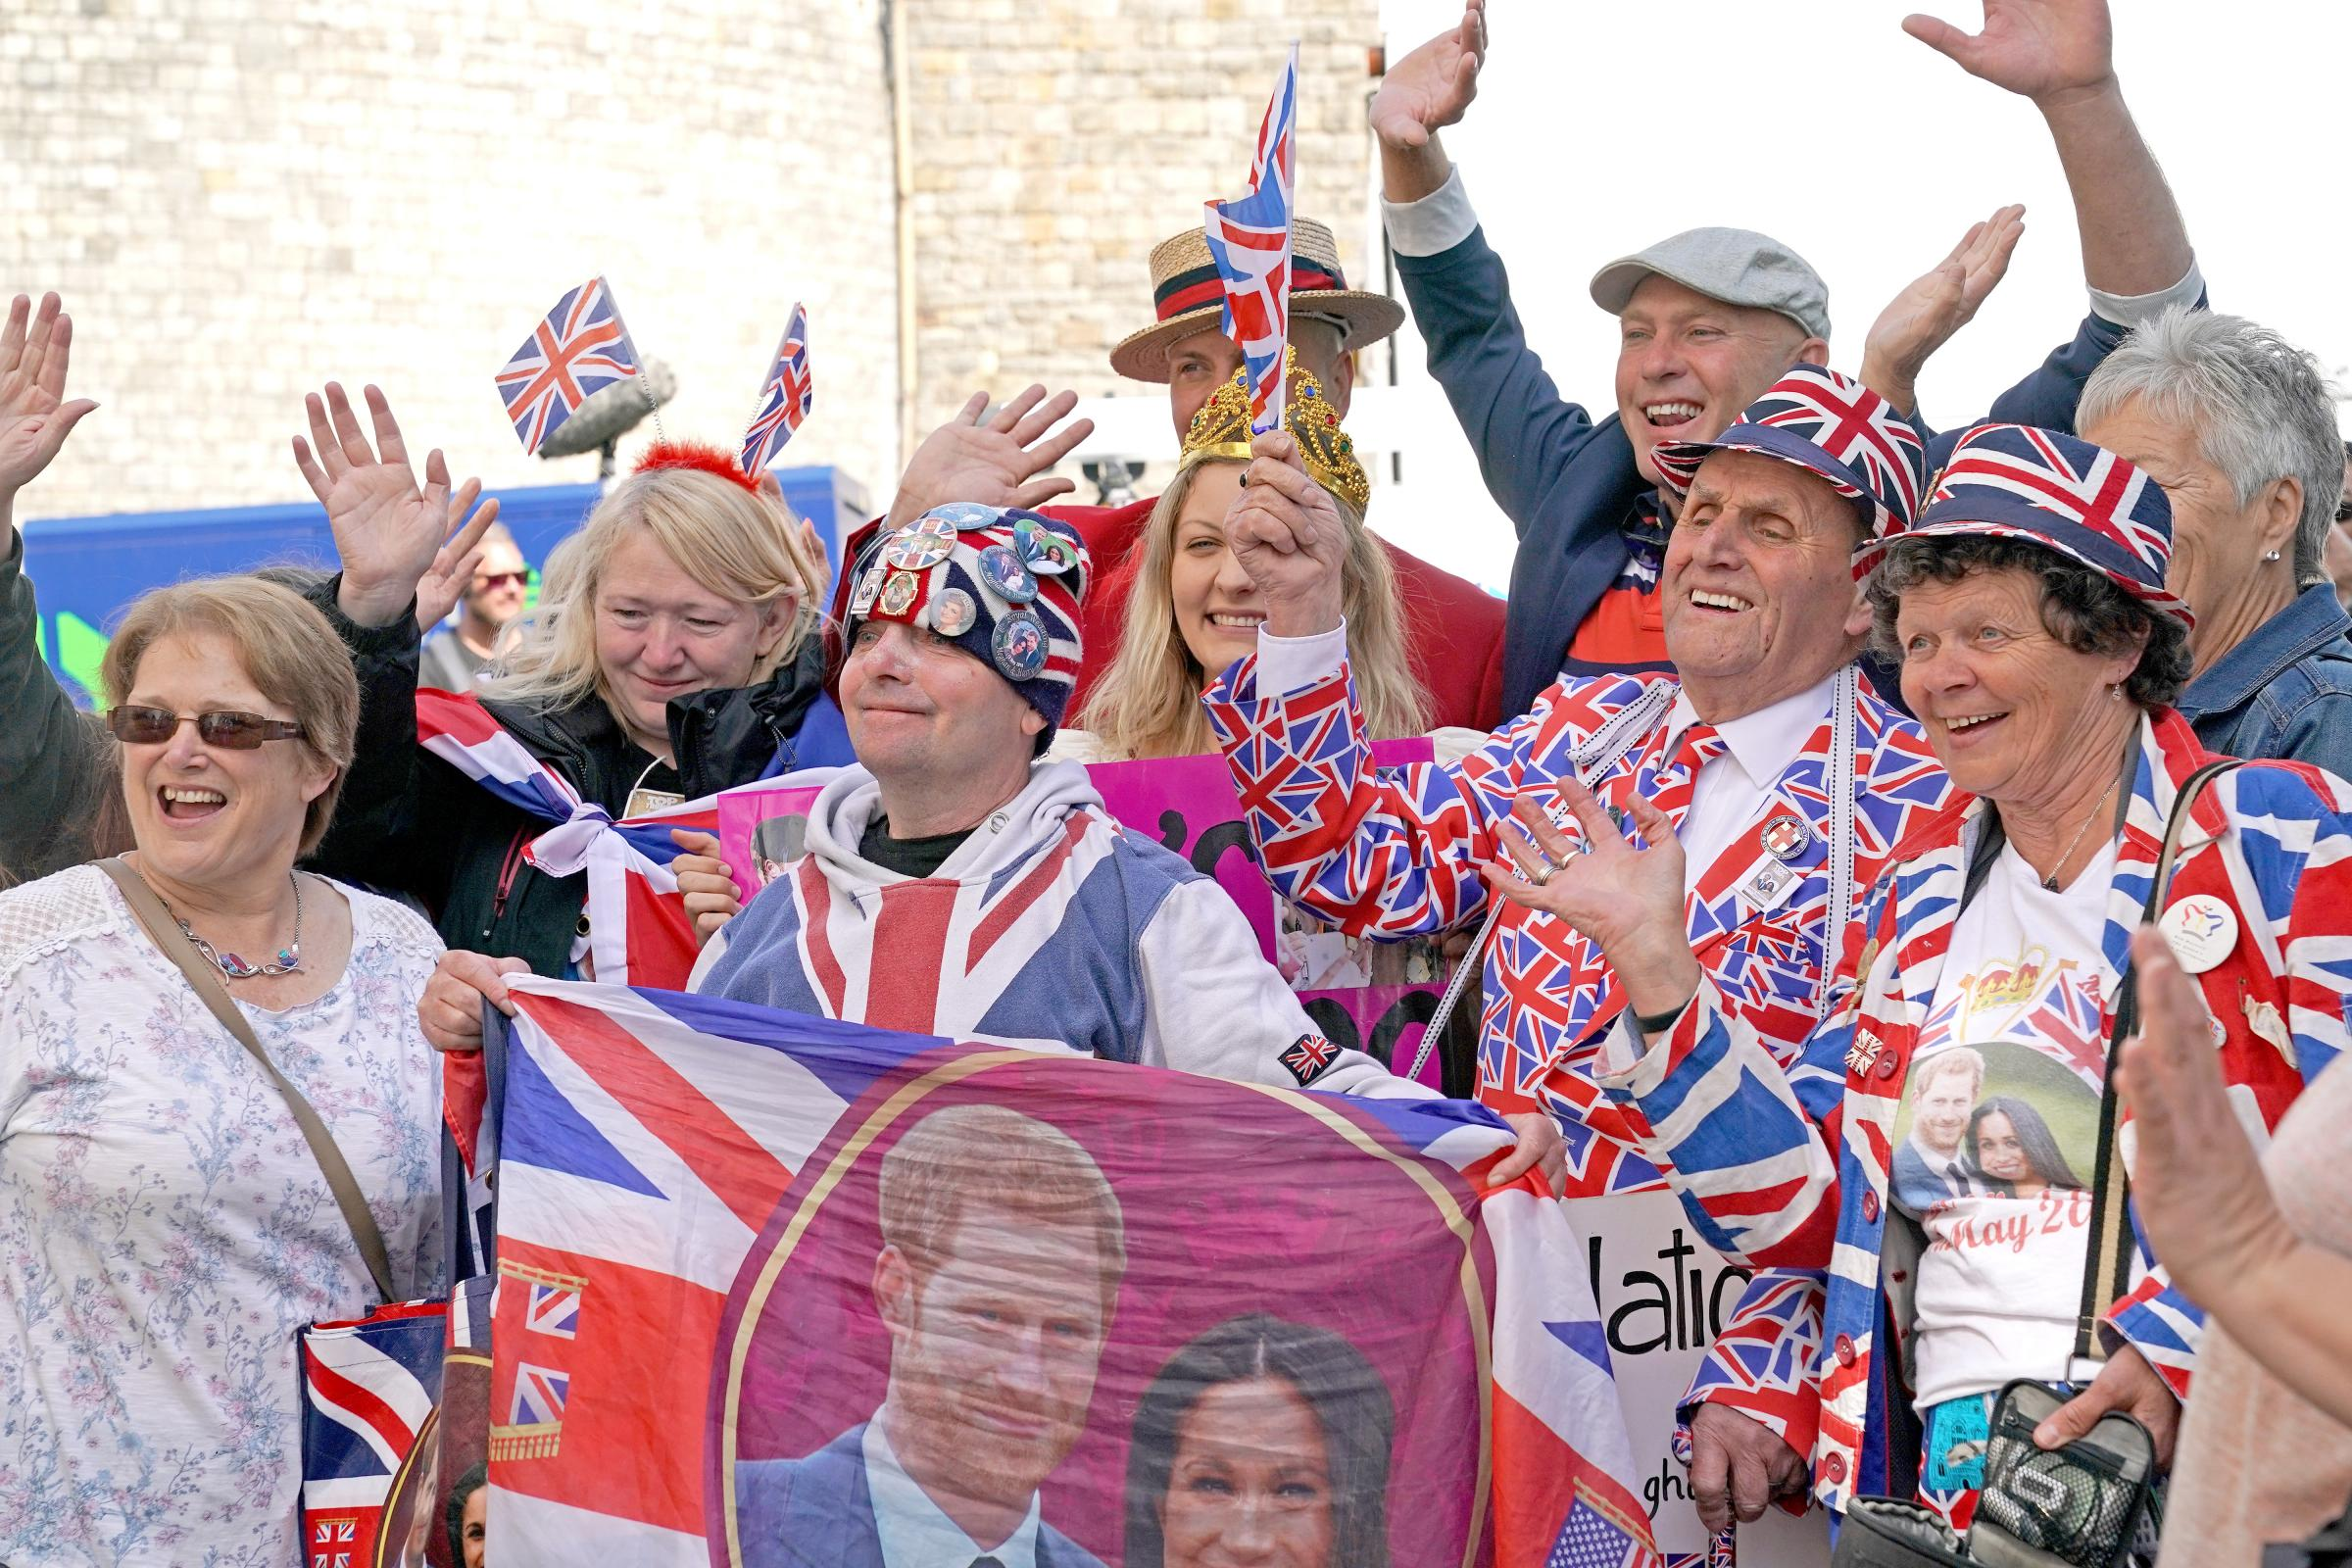 Royal fans in Windsor have been told not to throw confetti ahead of the wedding of Prince Harry and Meghan Markle (Owen Humphrey/PA)